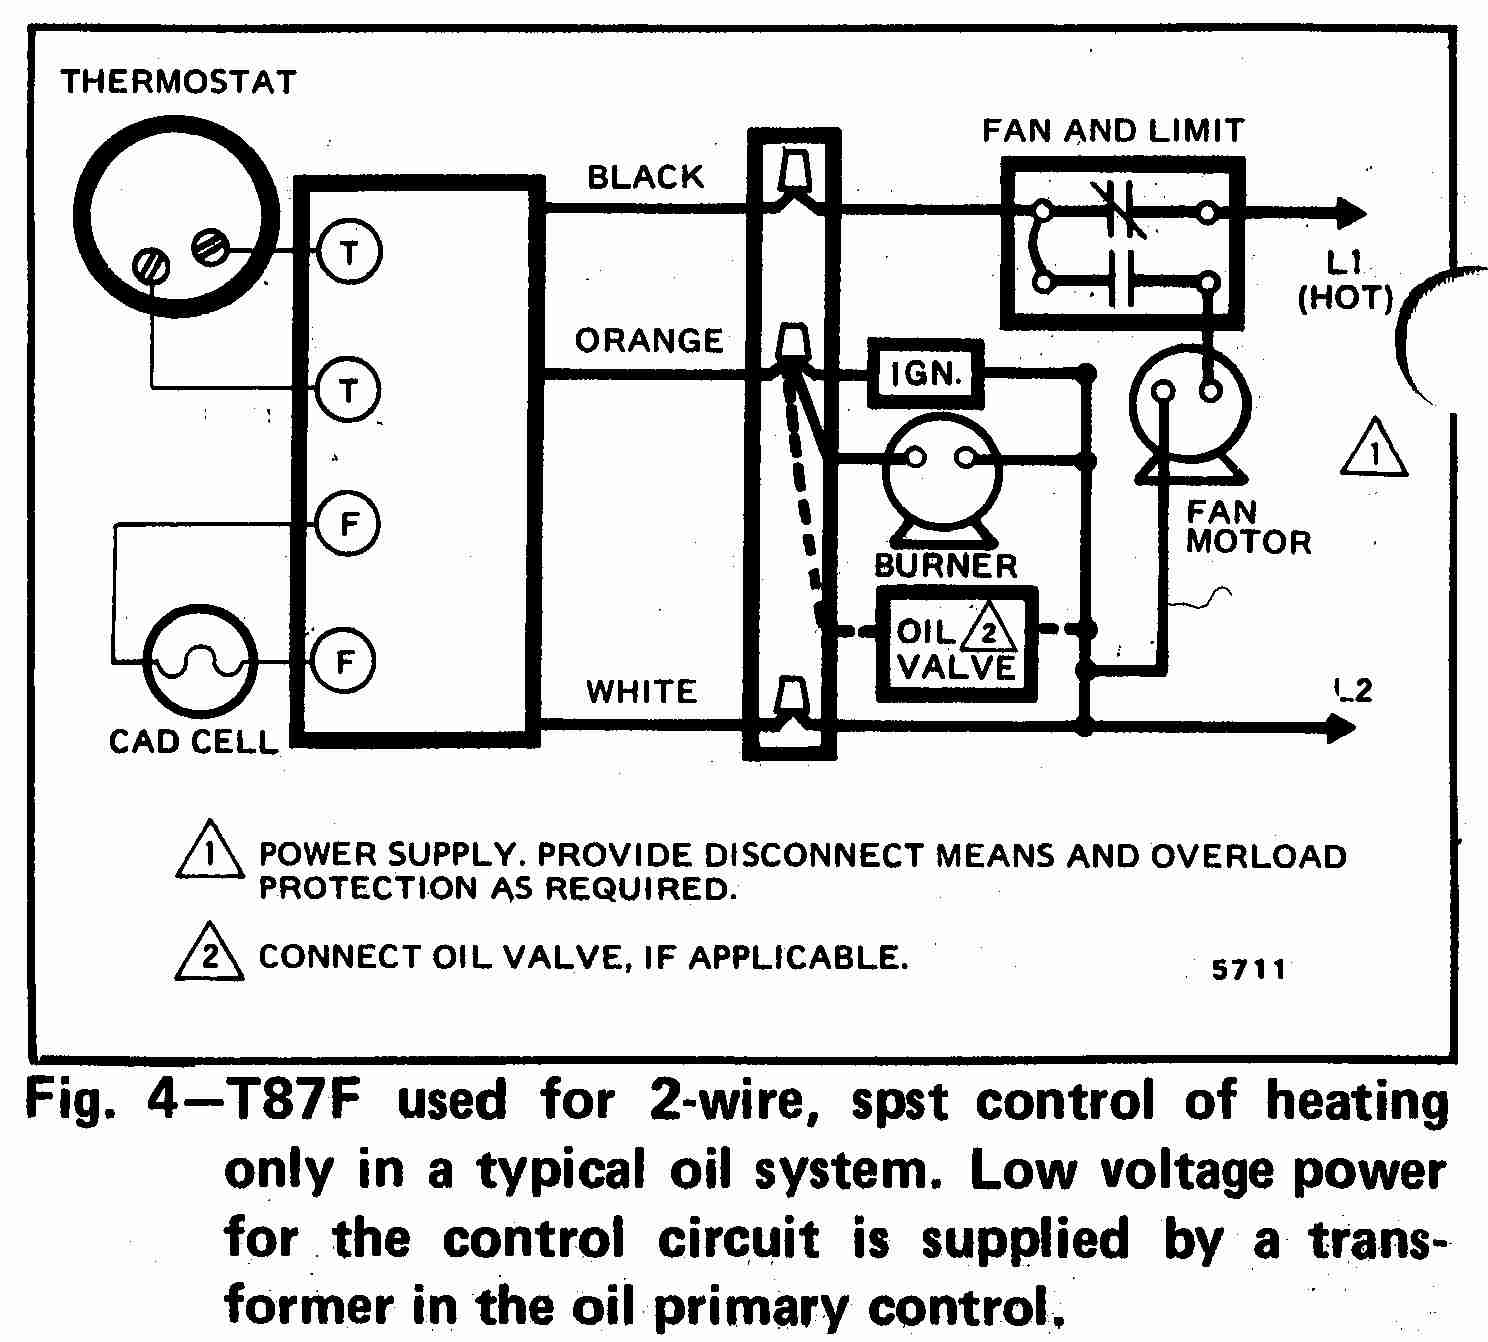 TT_T87F_0002_2W_DJF hvac wiring diagram center pivot irrigation wiring diagrams honeywell mercury thermostat wiring diagram at suagrazia.org